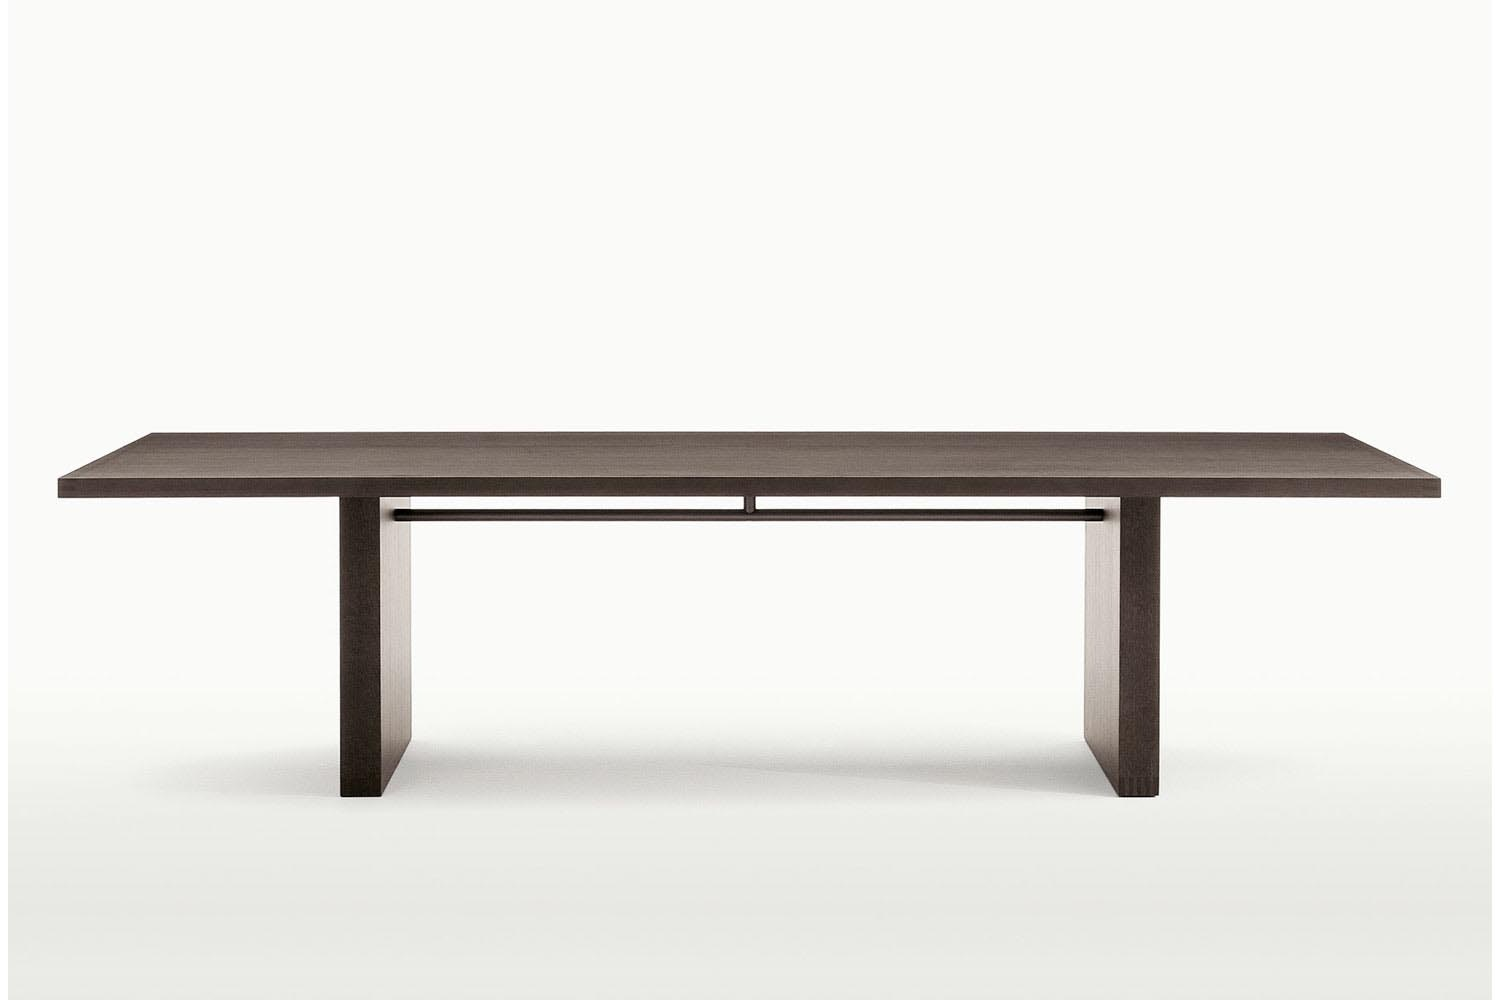 Simposio Table by Antonio Citterio for Maxalto